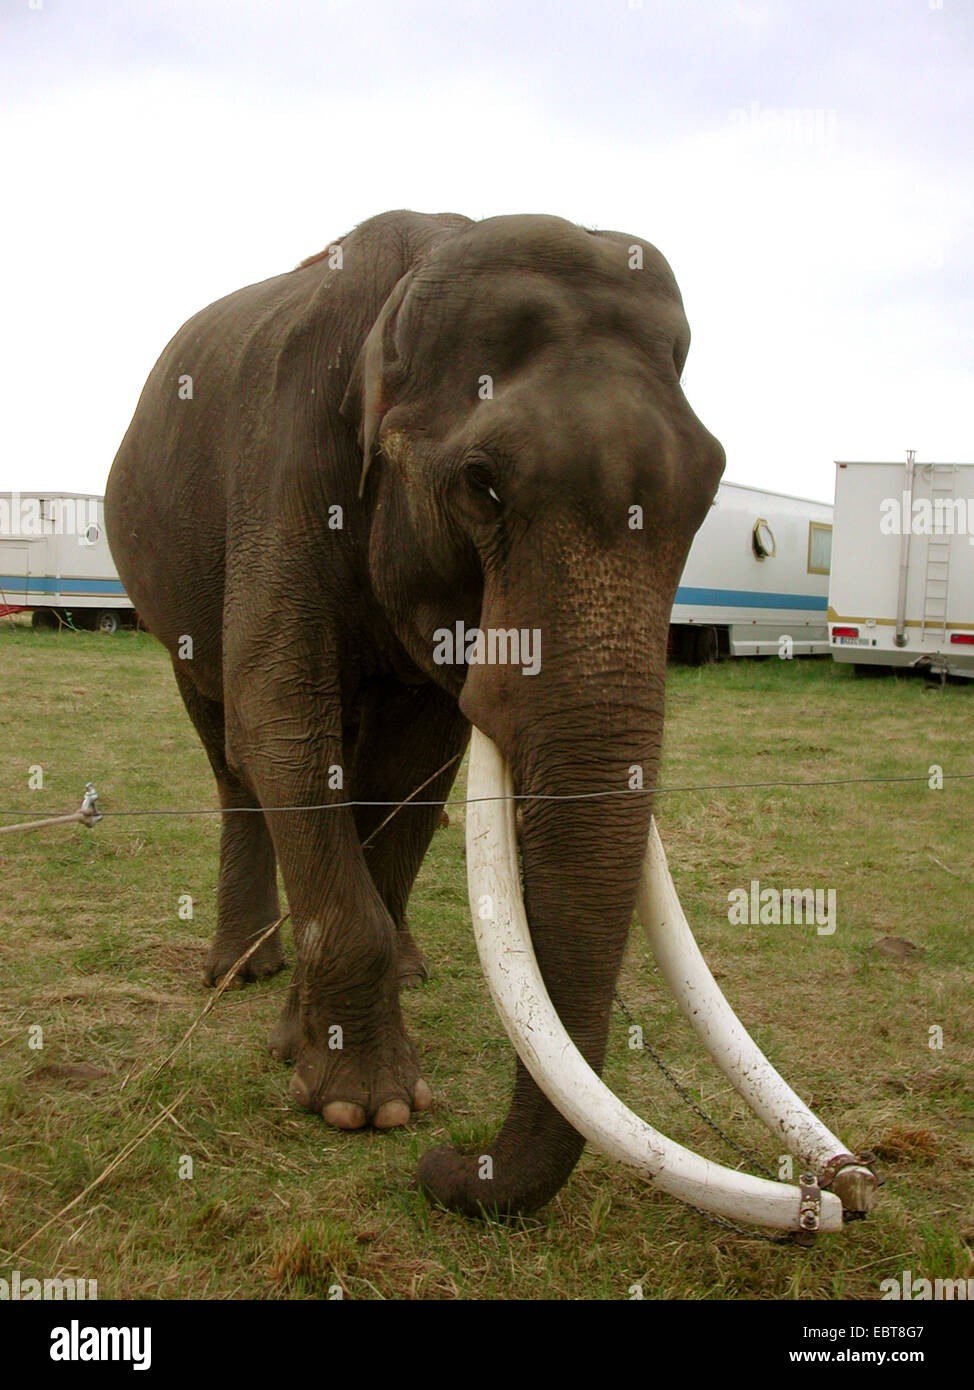 L'éléphant indien (Elephas maximus indicus, Elephas maximus bengalensis), animal de cirque : Photo Stock